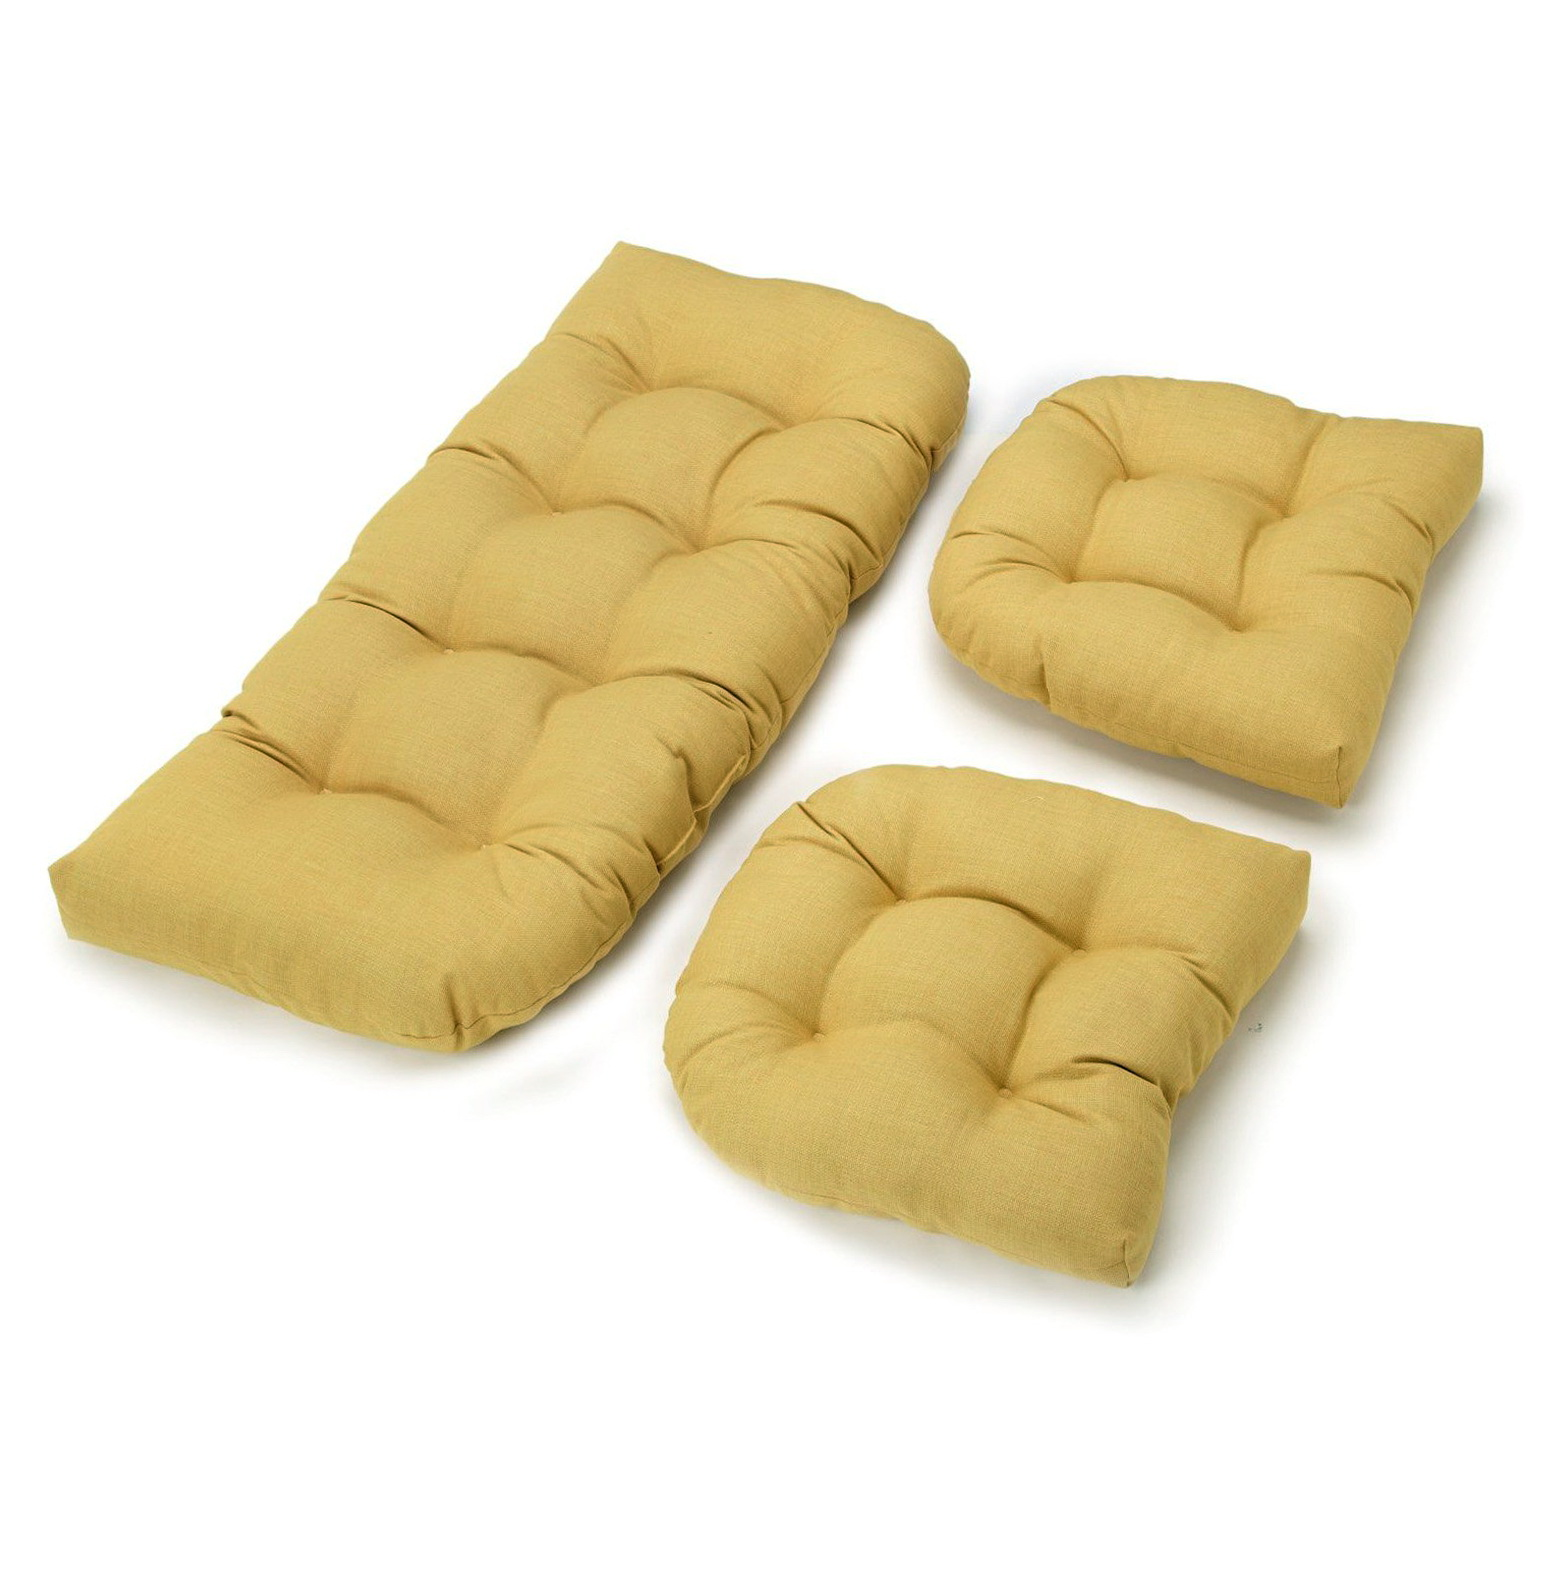 Outdoor Patio Furniture Cushions Sale